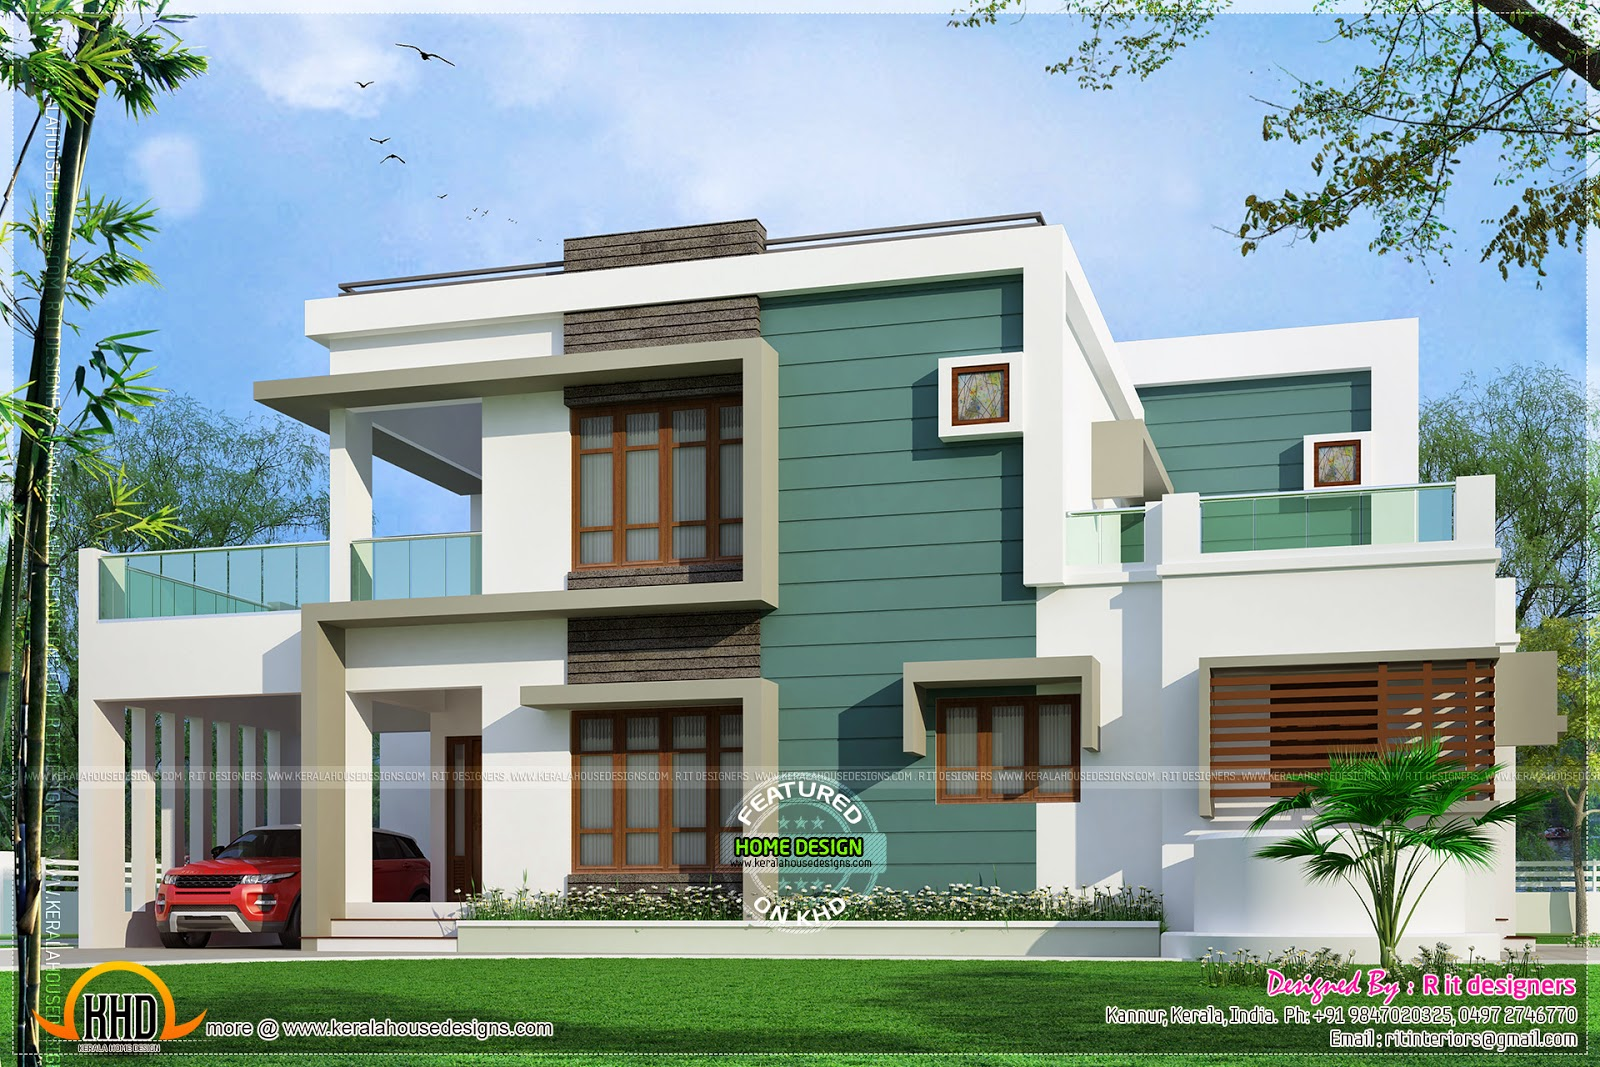 Kannur home design kerala home design and floor plans Easy home design ideas